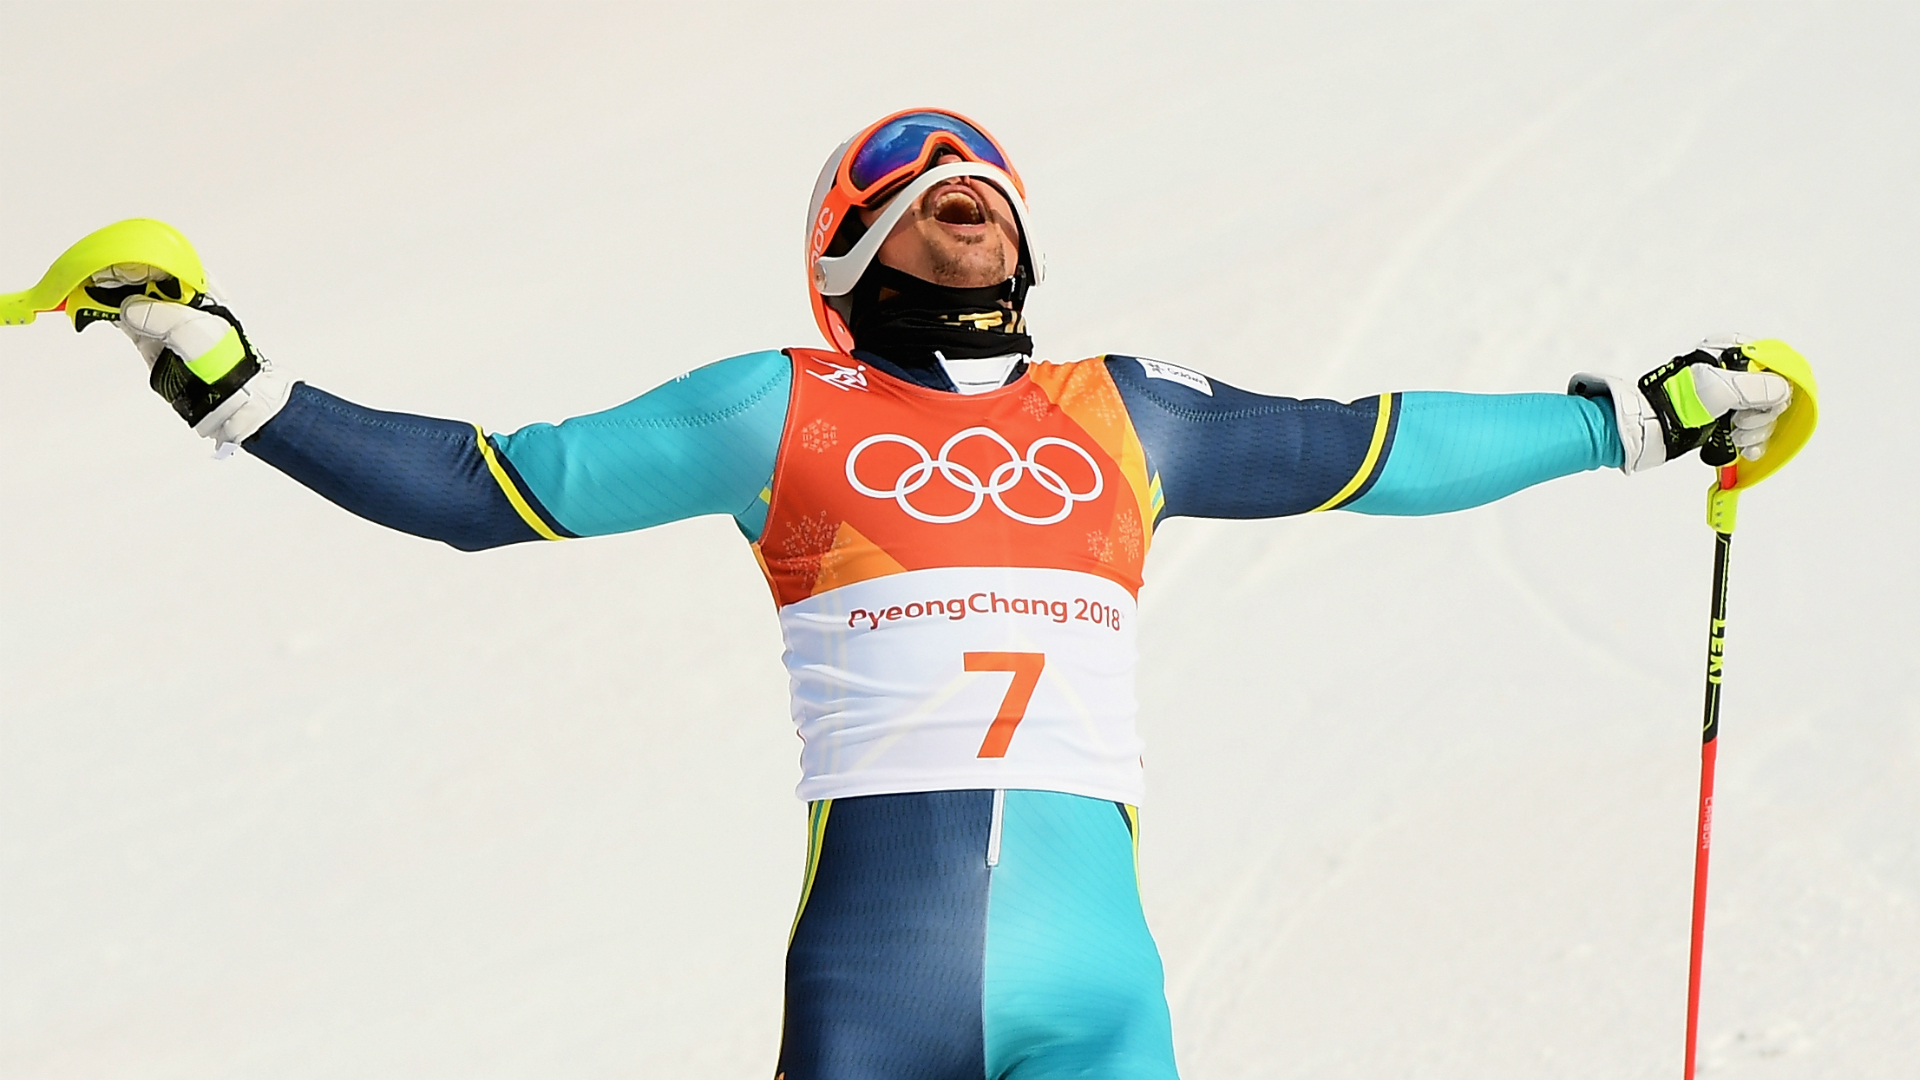 Olympics: Sweden's Myhrer wins gold in men's slalom